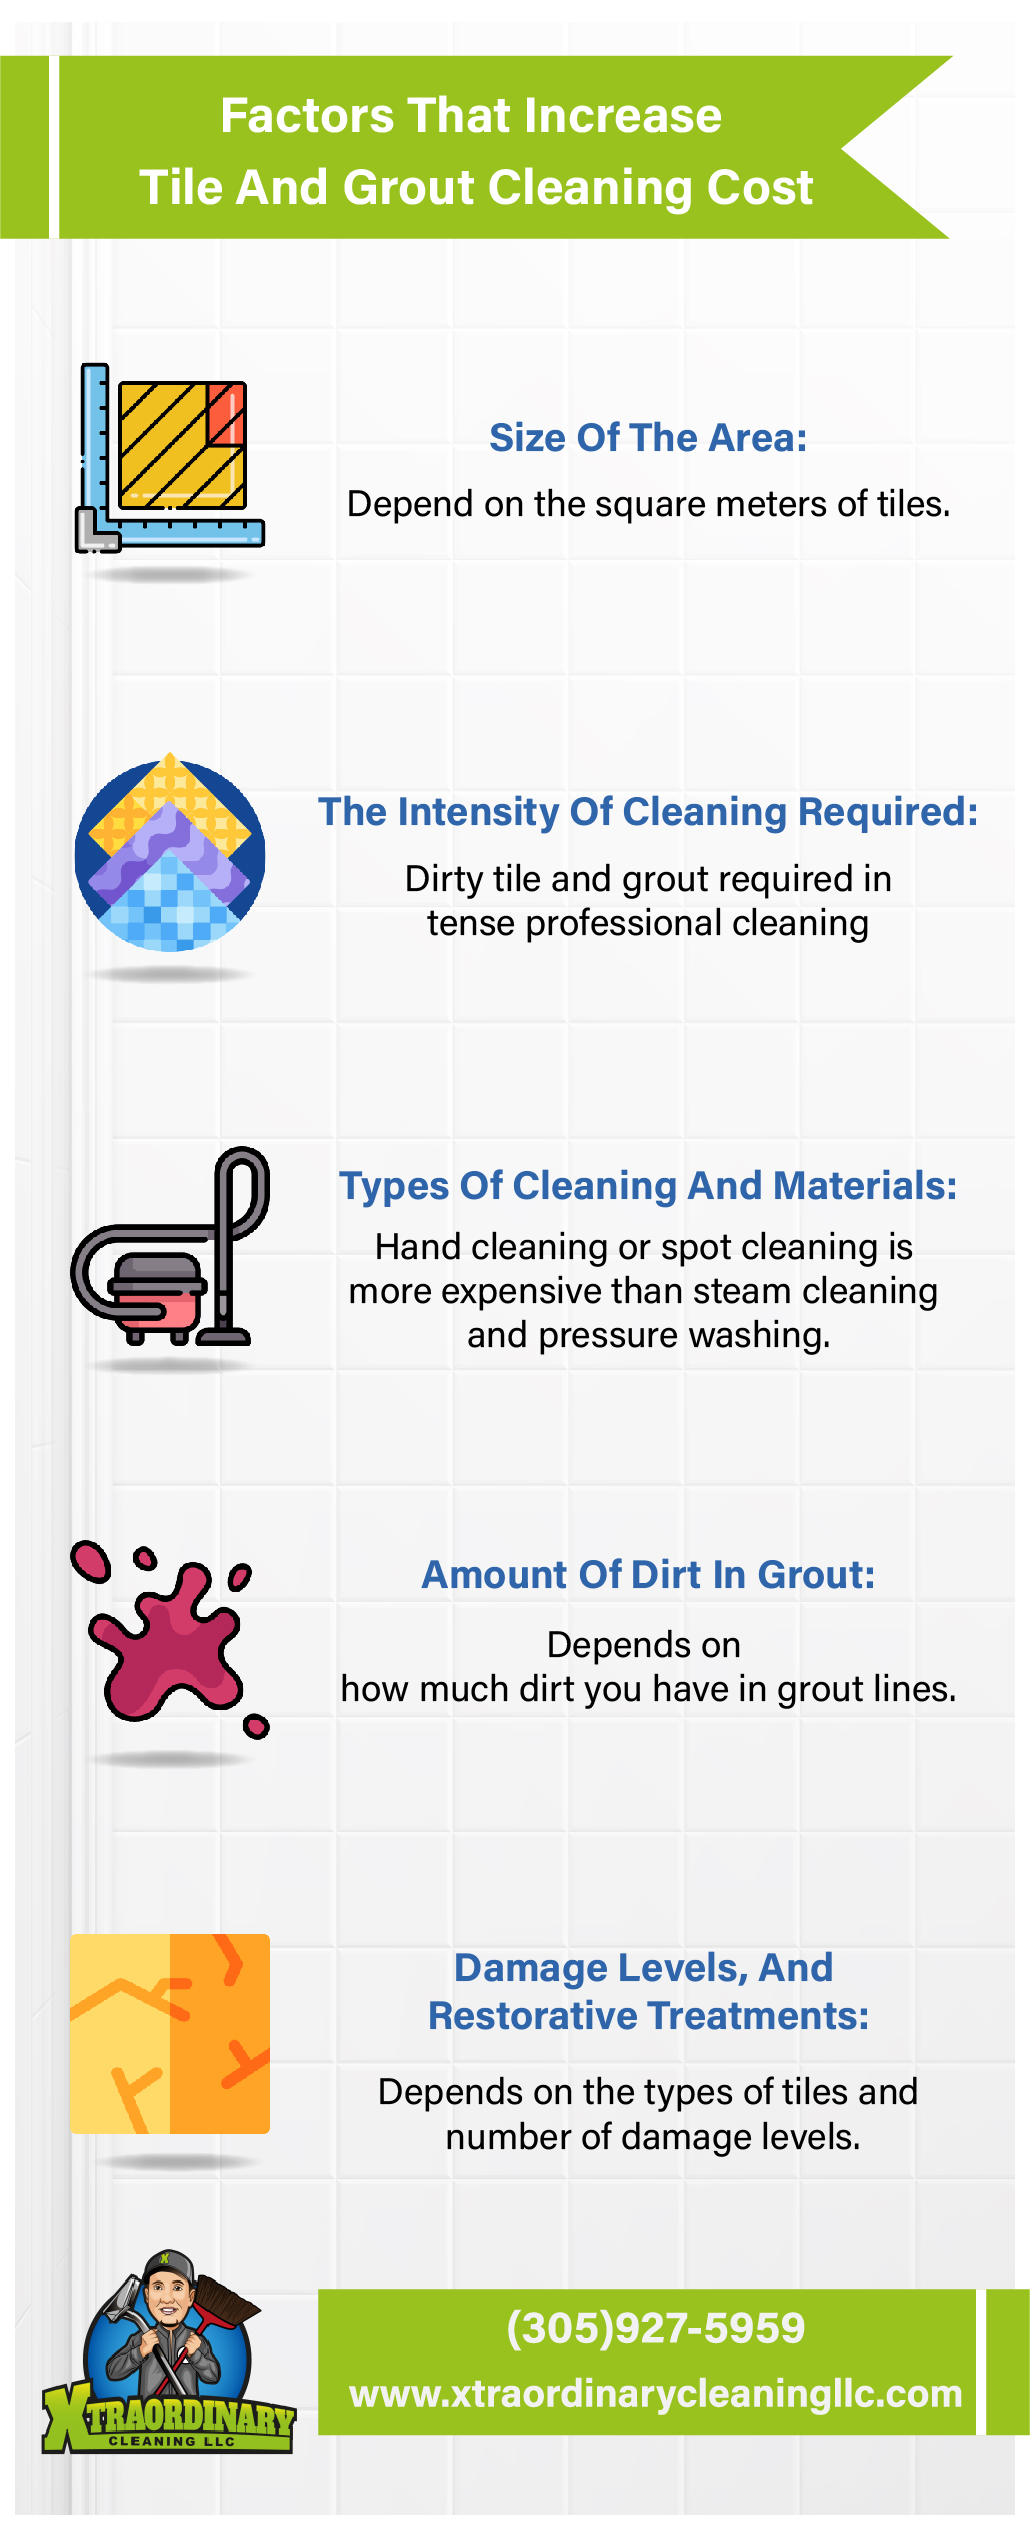 Factors That Increase Tile And Grout Cleaning Cost [Infographic]